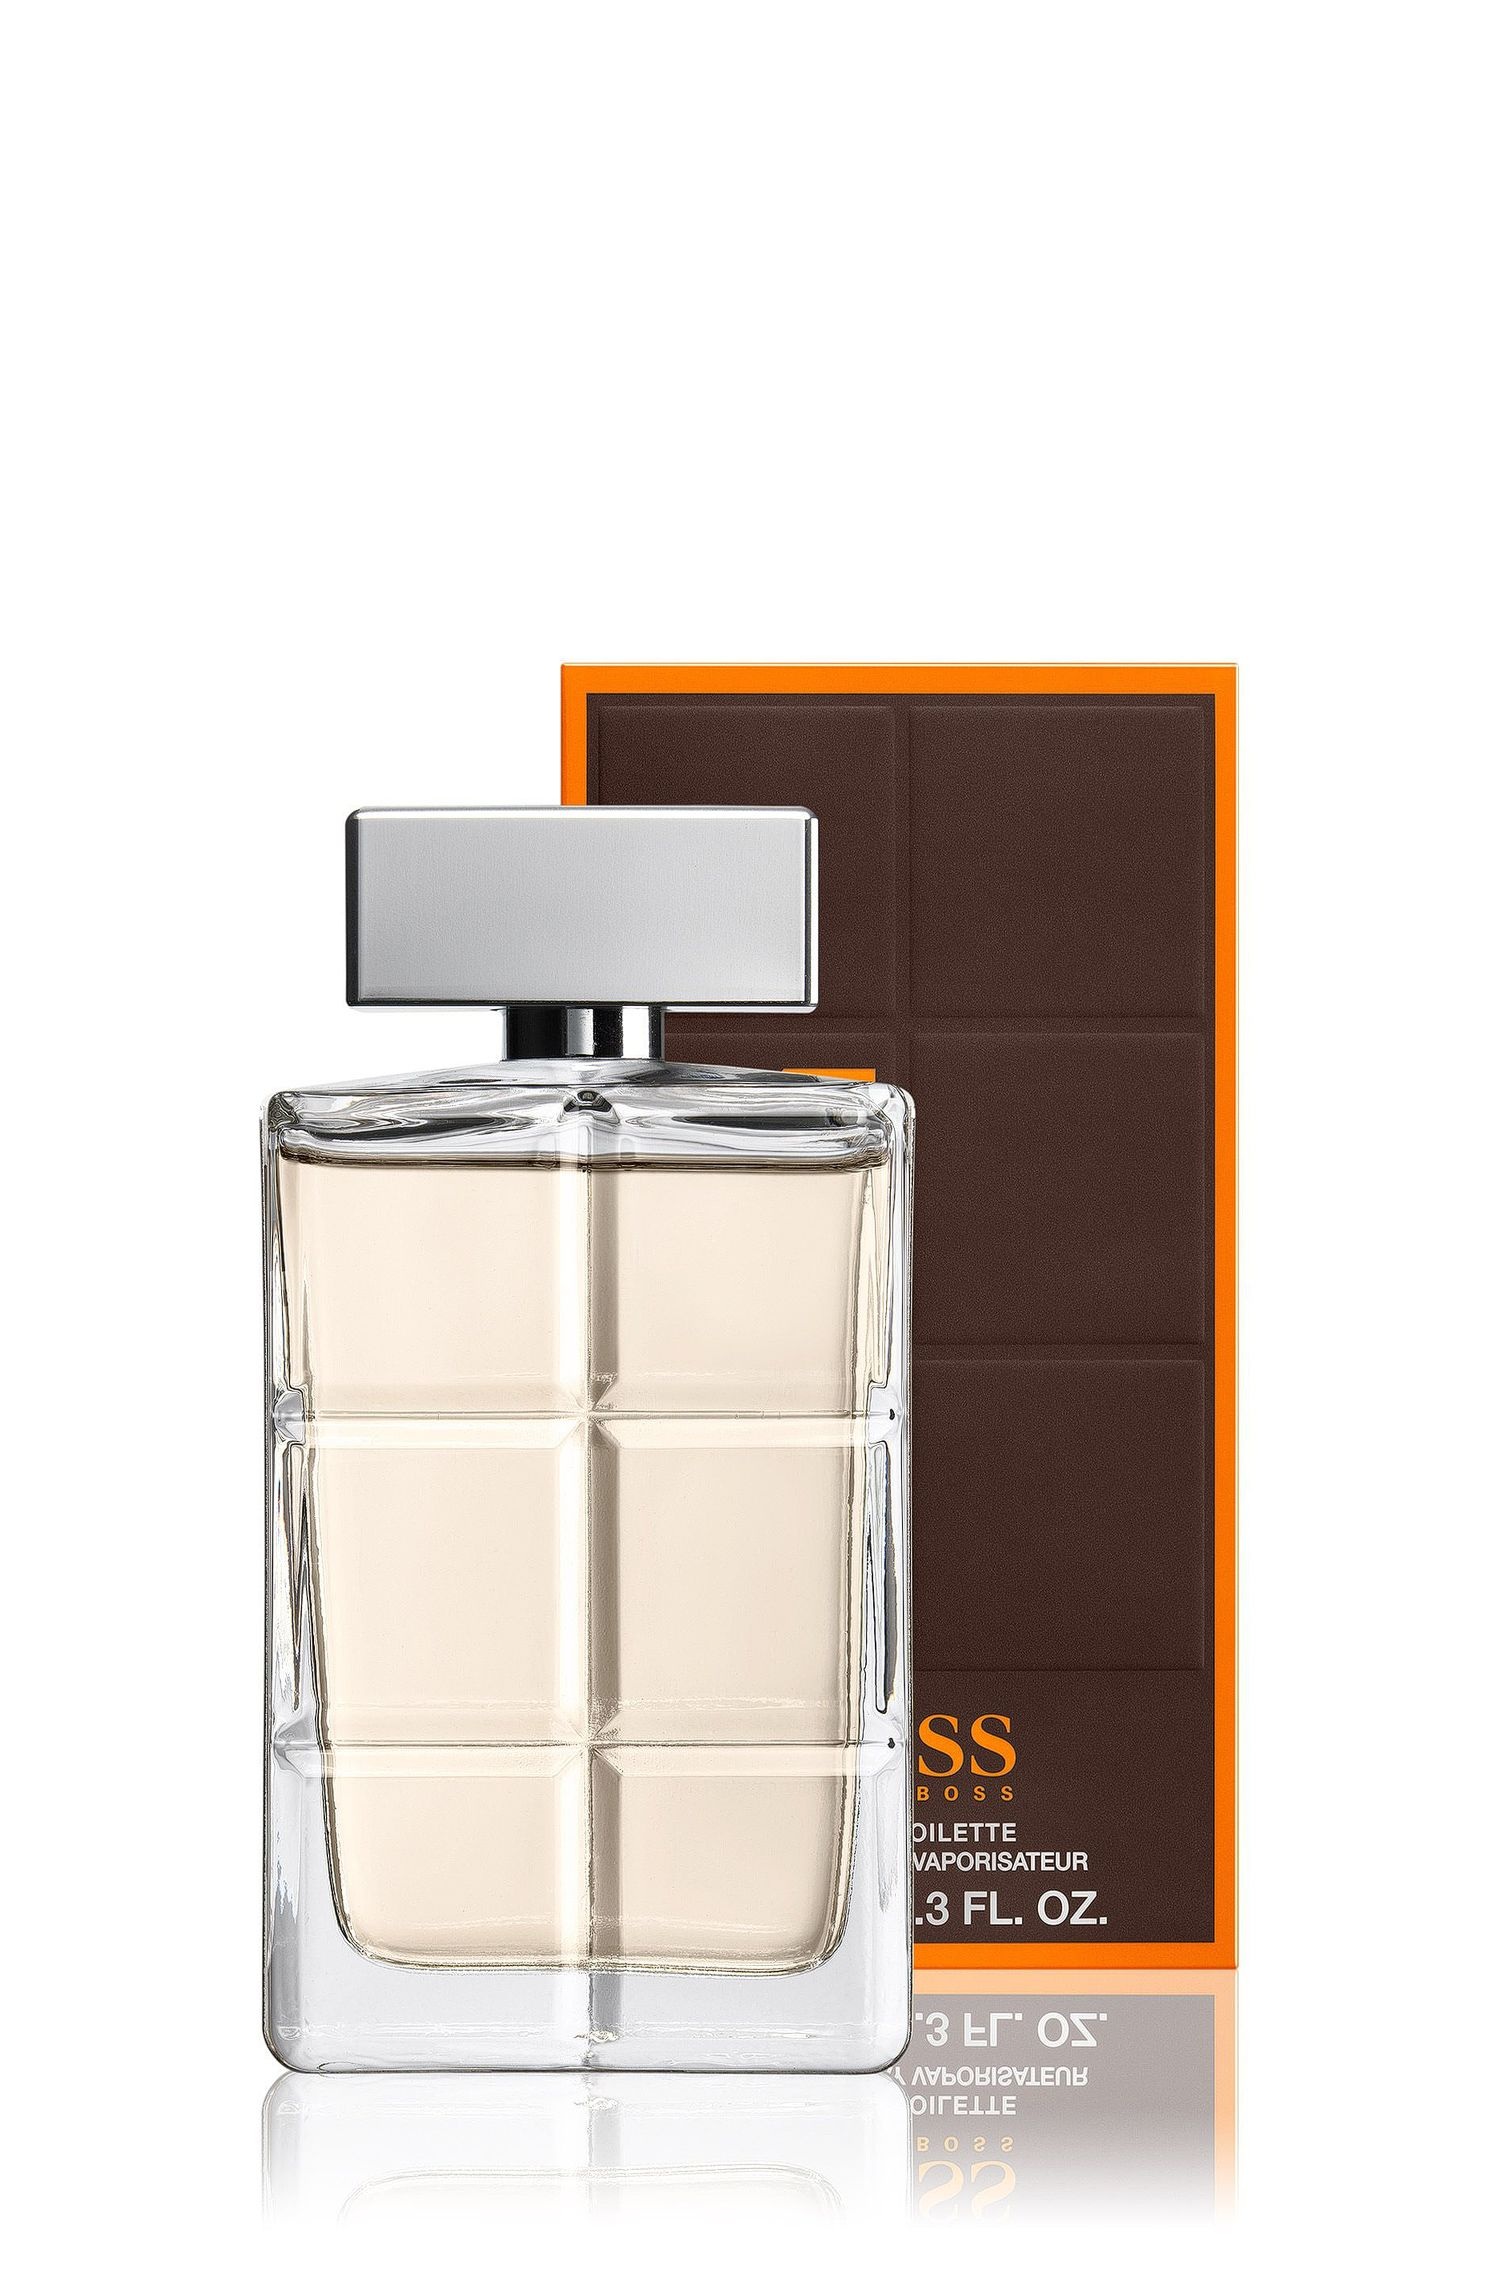 'BOSS Orange Man' | 3.3 fl. oz. (100 mL) Eau de Toilette